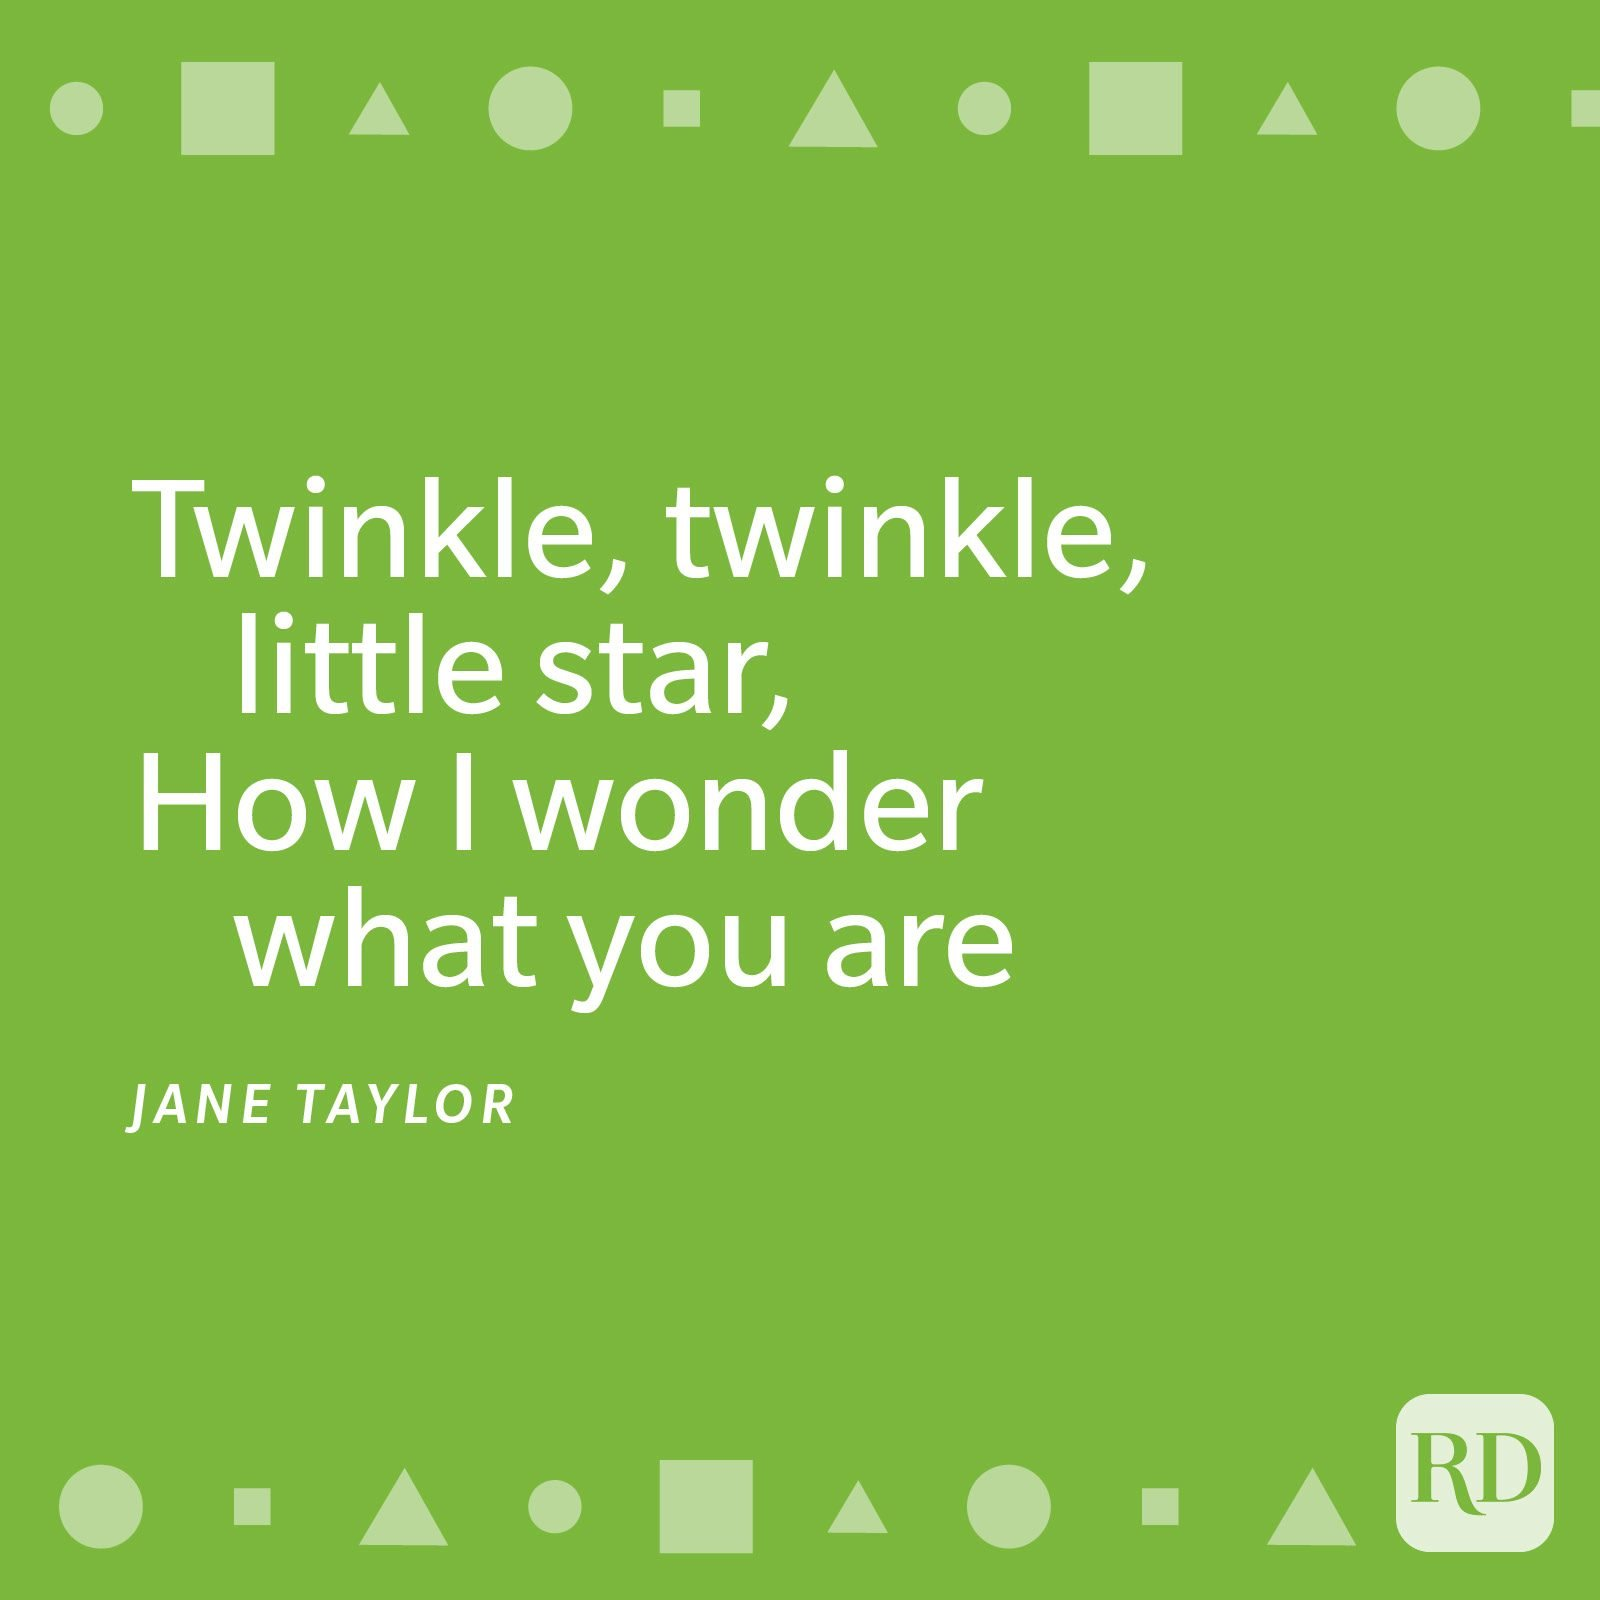 Twinkle, twinkle, little star, How I wonder what you are. Up above the world so high, Like a diamond in the sky. Twinkle, twinkle, little star, How I wonder what you are!